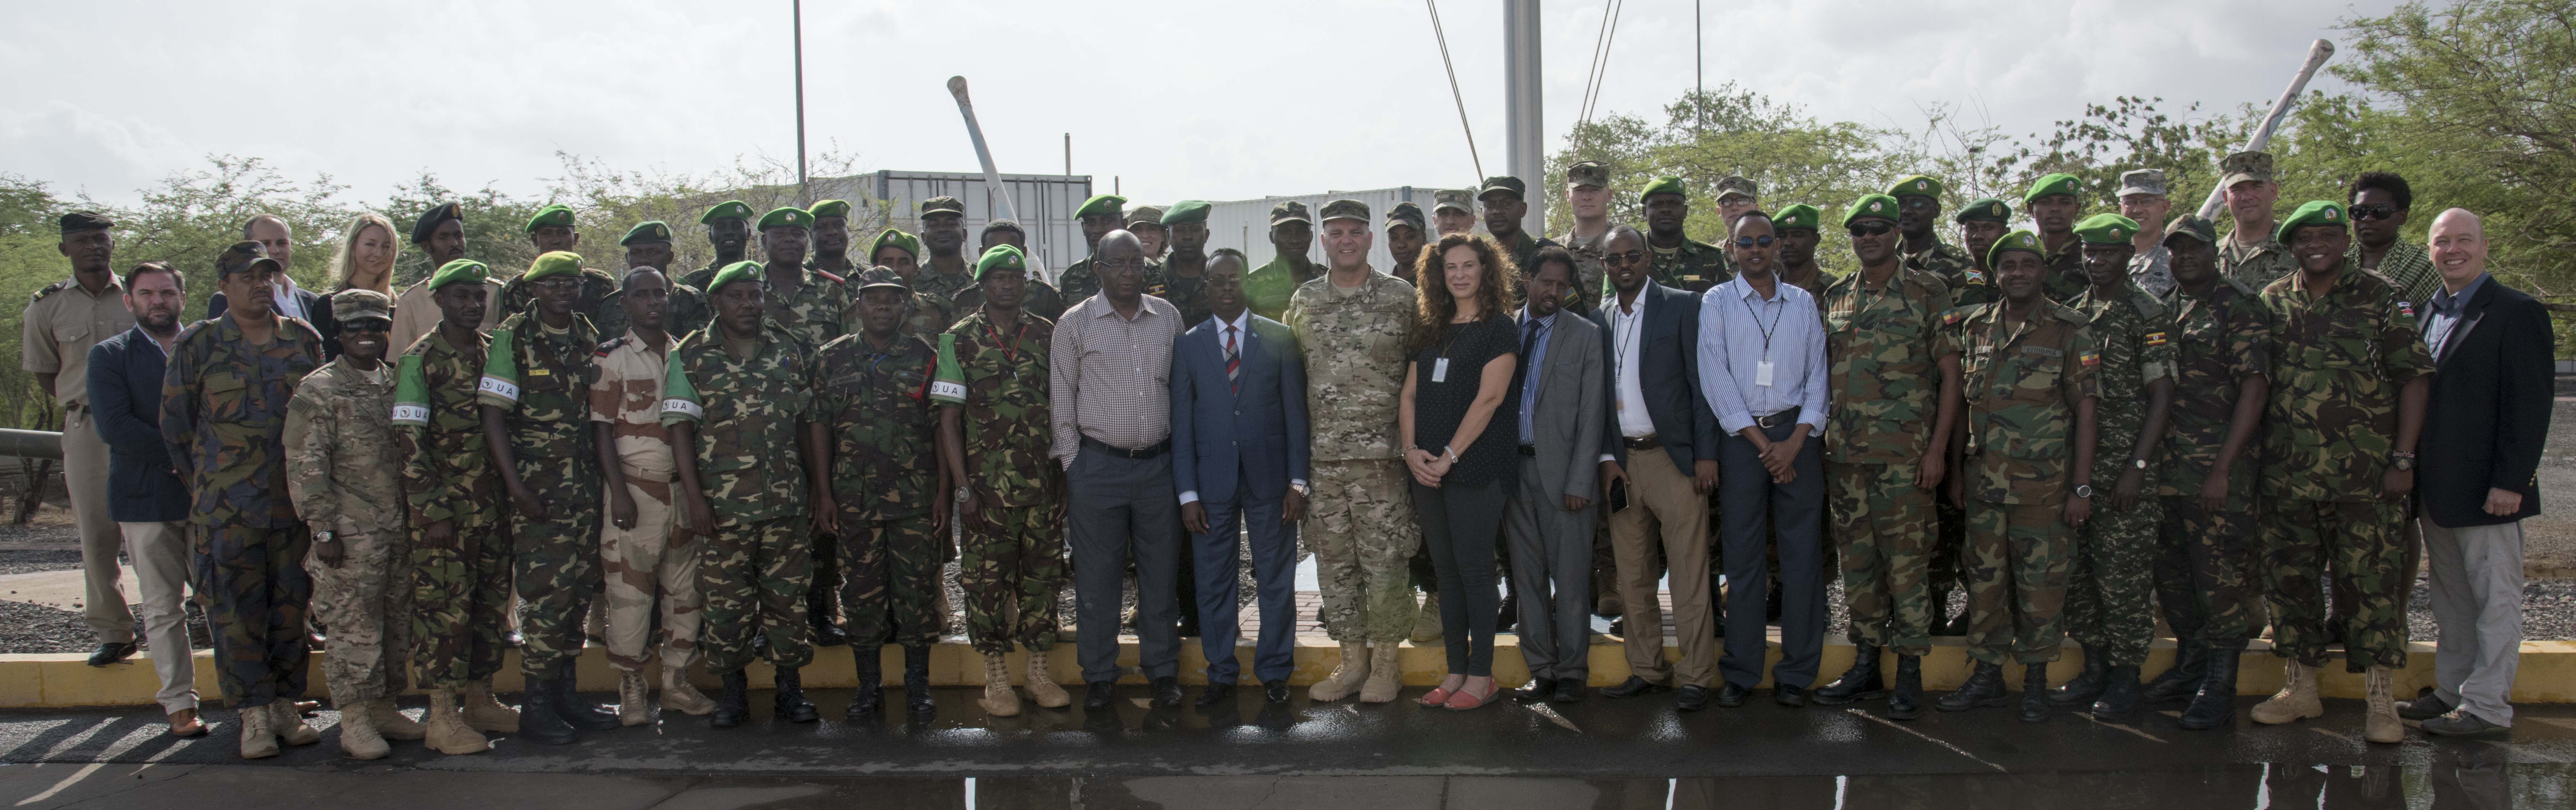 Members from the African Union Mission to Somalia, partner nations, United Nations, and the Department of State joined their U.S. military colleagues at the Public Information Officer Conference, hosted by Combined Joint Task Force-Horn of Africa, at Camp Lemonnier, Djibouti, Nov. 4, 2015. The conference enabled members from more than nine nations to gather and exchange best practices on achieving mission objectives in the information environment.